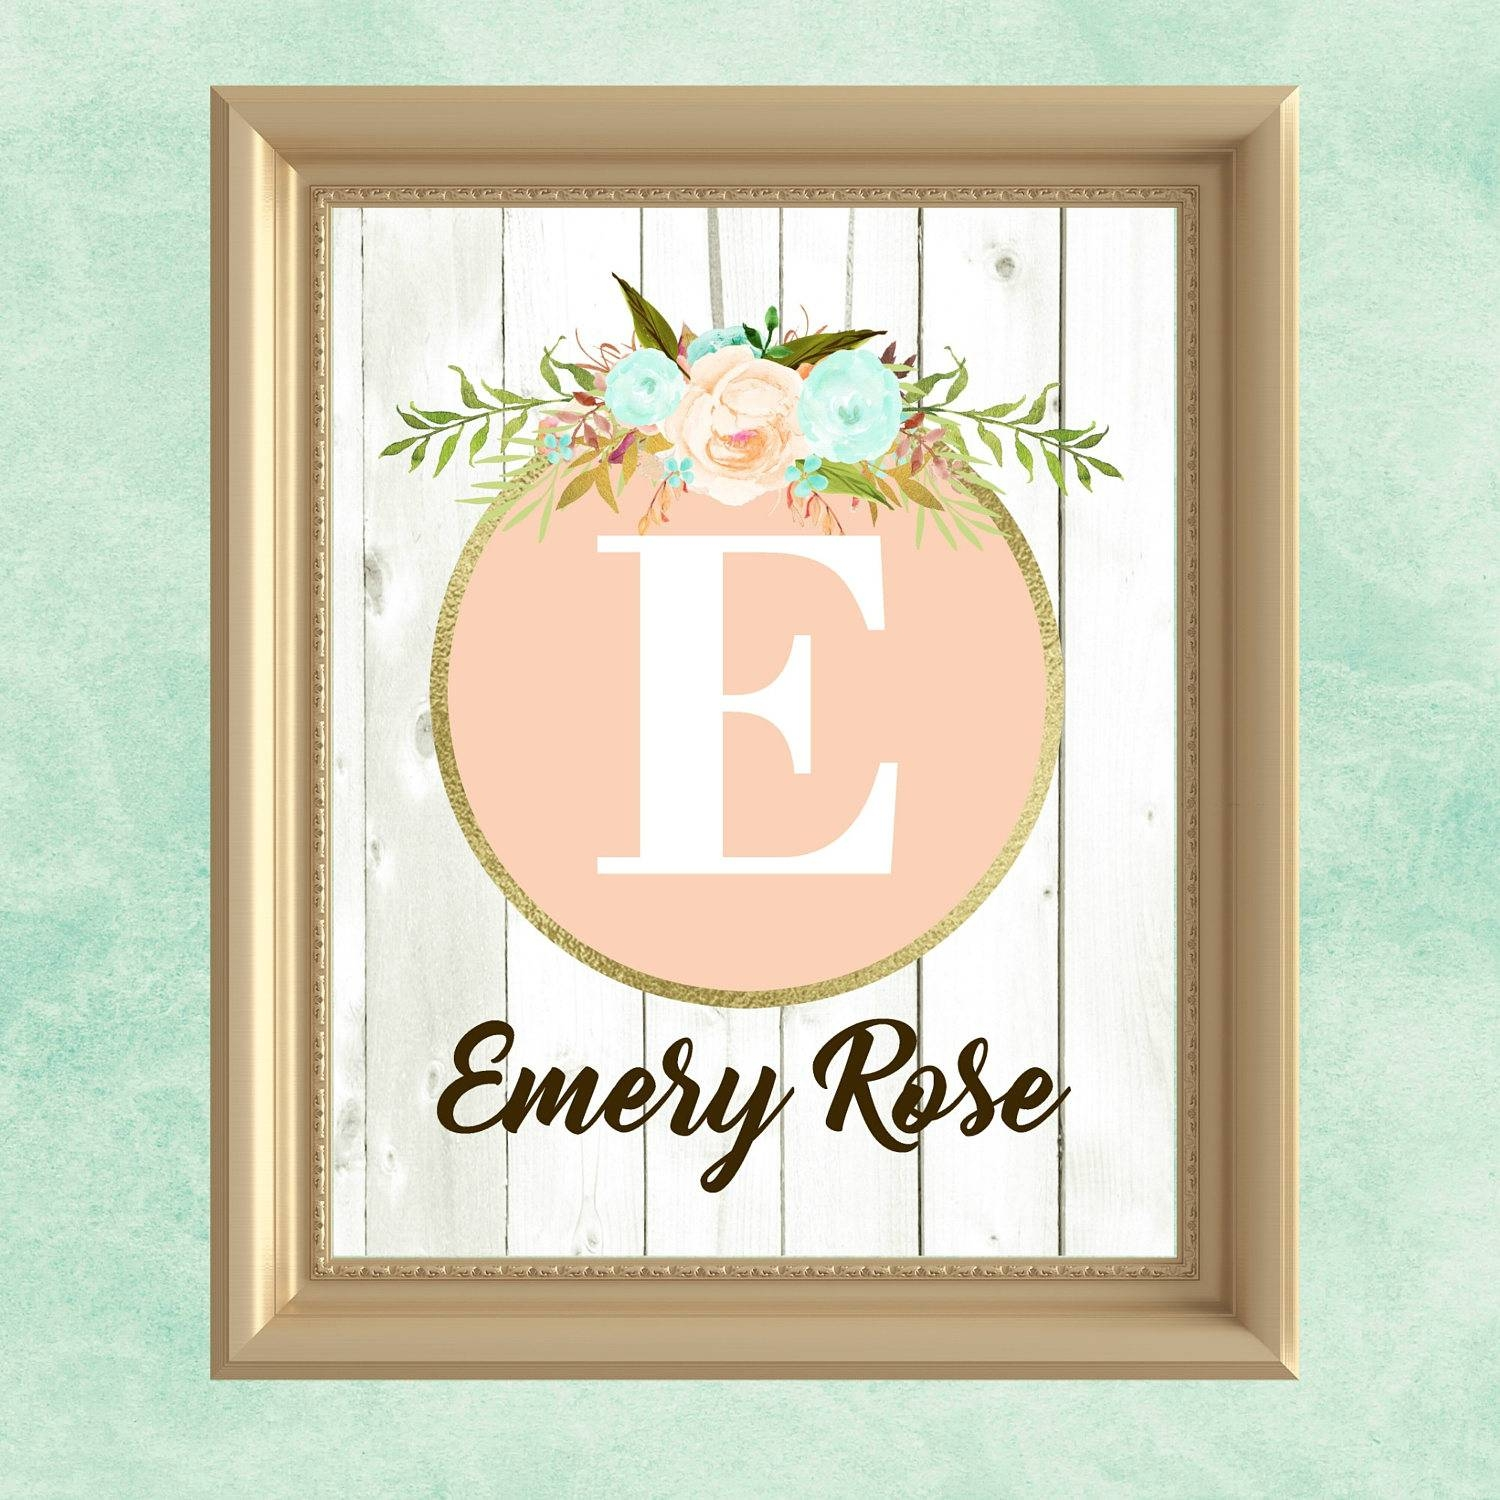 Baby Girl Nursery Wall Art Peach Mint Gold Nursery Decor With Regard To Newest Baby Wall Art (View 7 of 30)